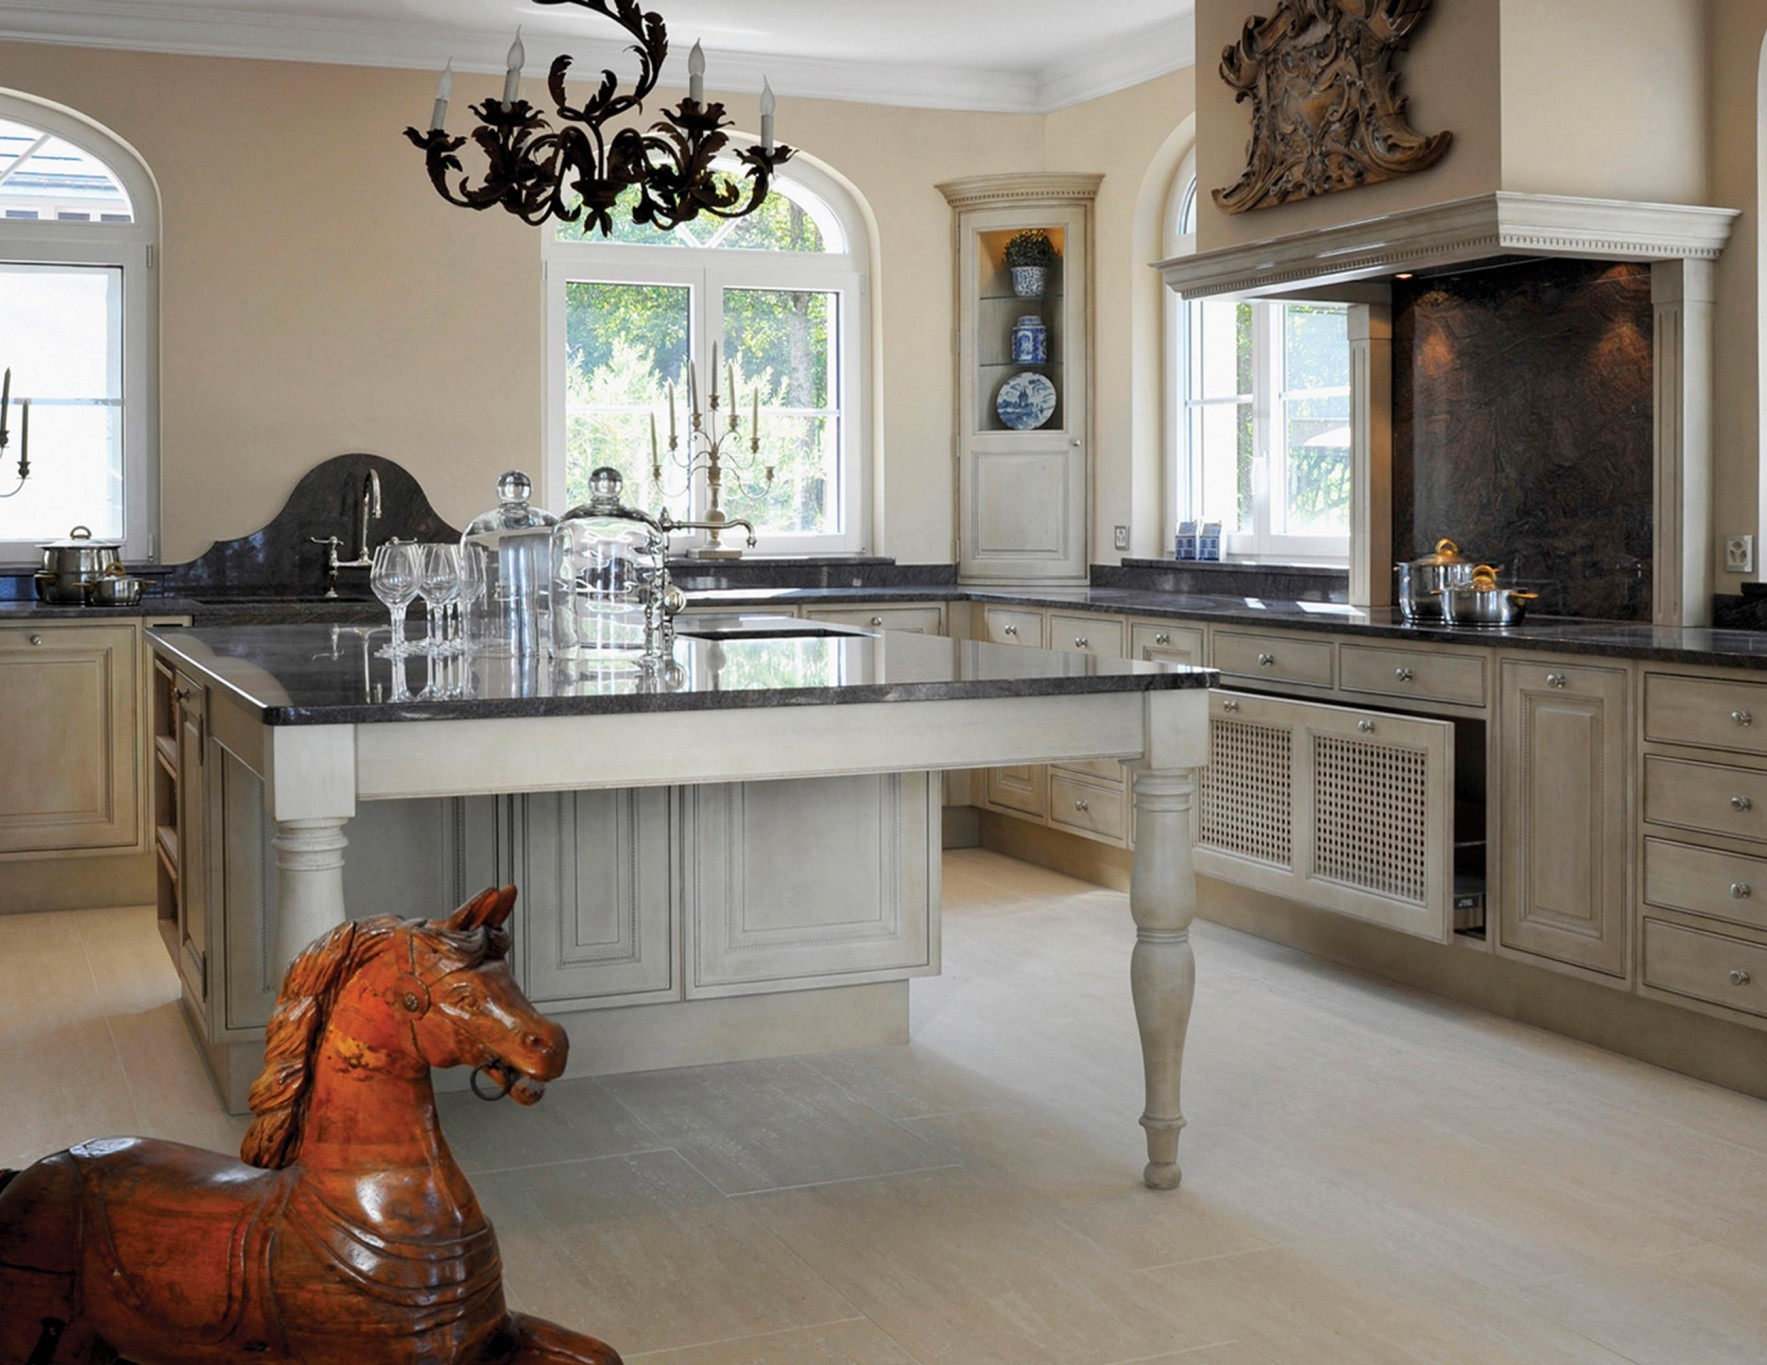 Exclusive wood finishing on remarkably crafted cabinets